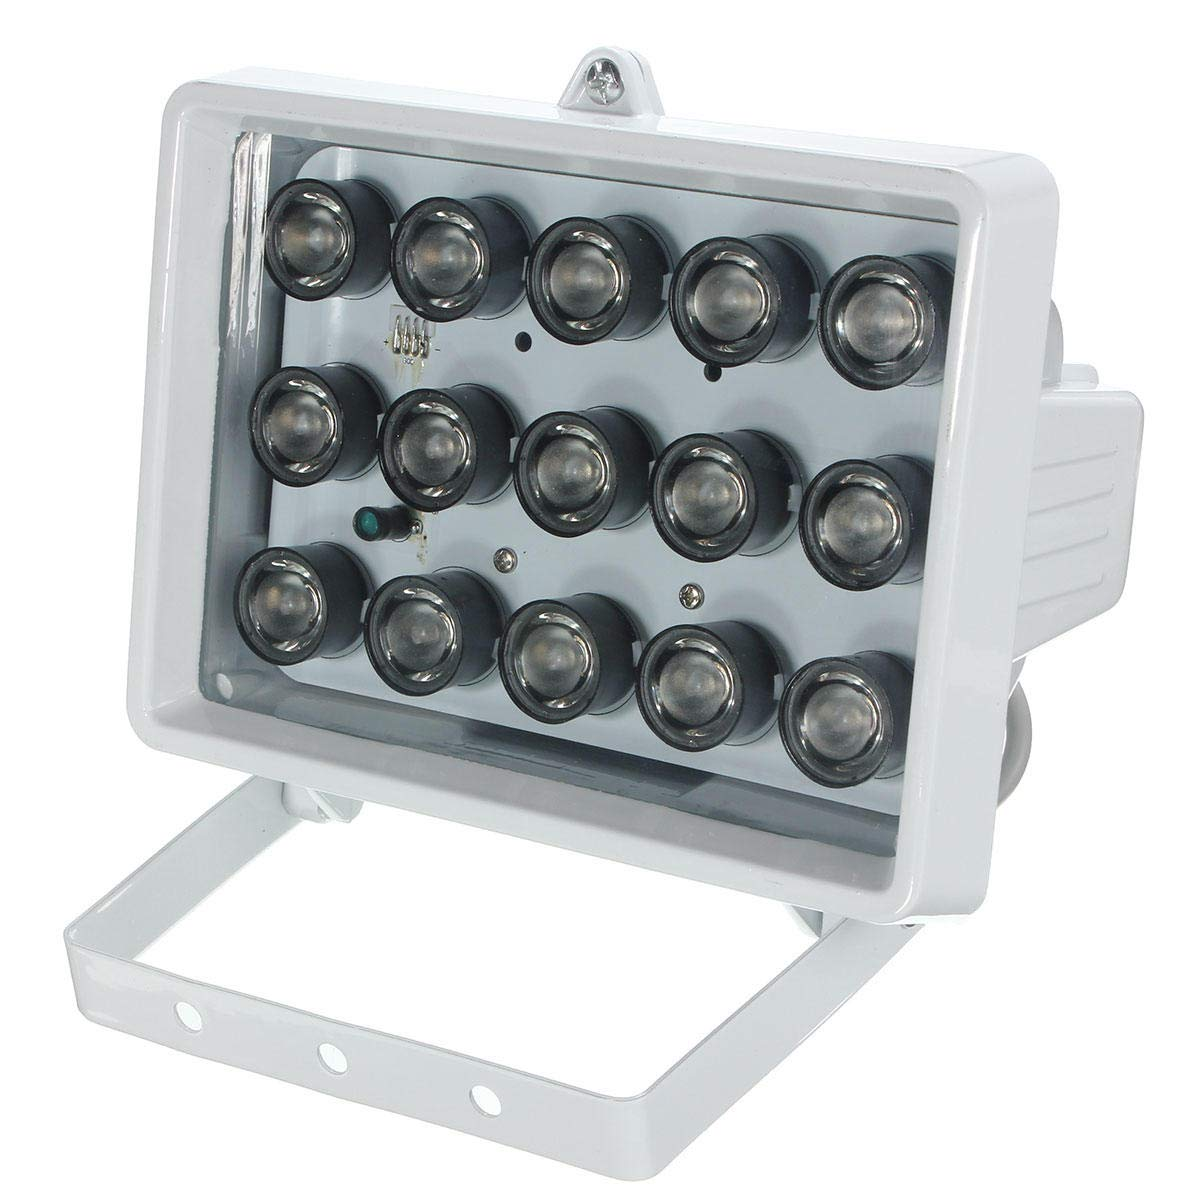 328ft 15LED 12V Night Vision Lamp IR Illuminator Infrared For Security Camera - CCTV Security Accessories Infrared Illuminator - 325 x Breadboard jumper wires by Unknown